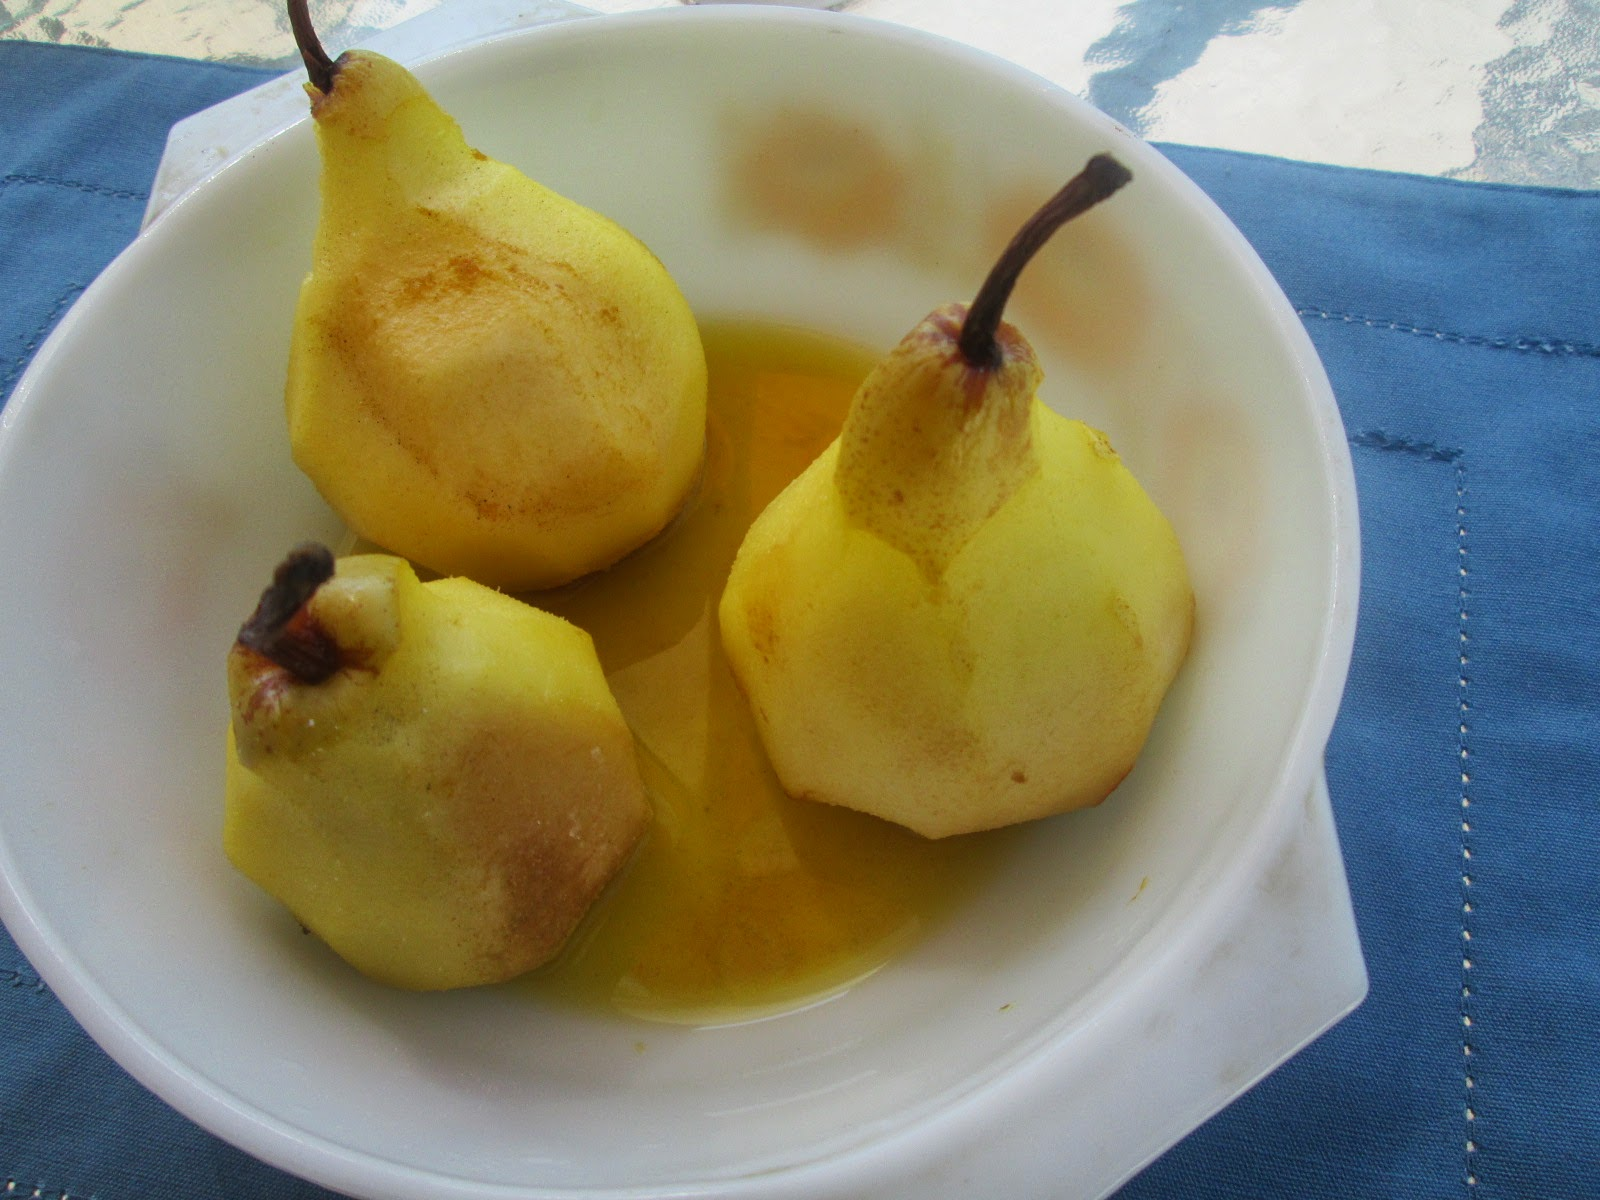 Canela kitchen: Poached pears with cardamom and saffron and SWAP